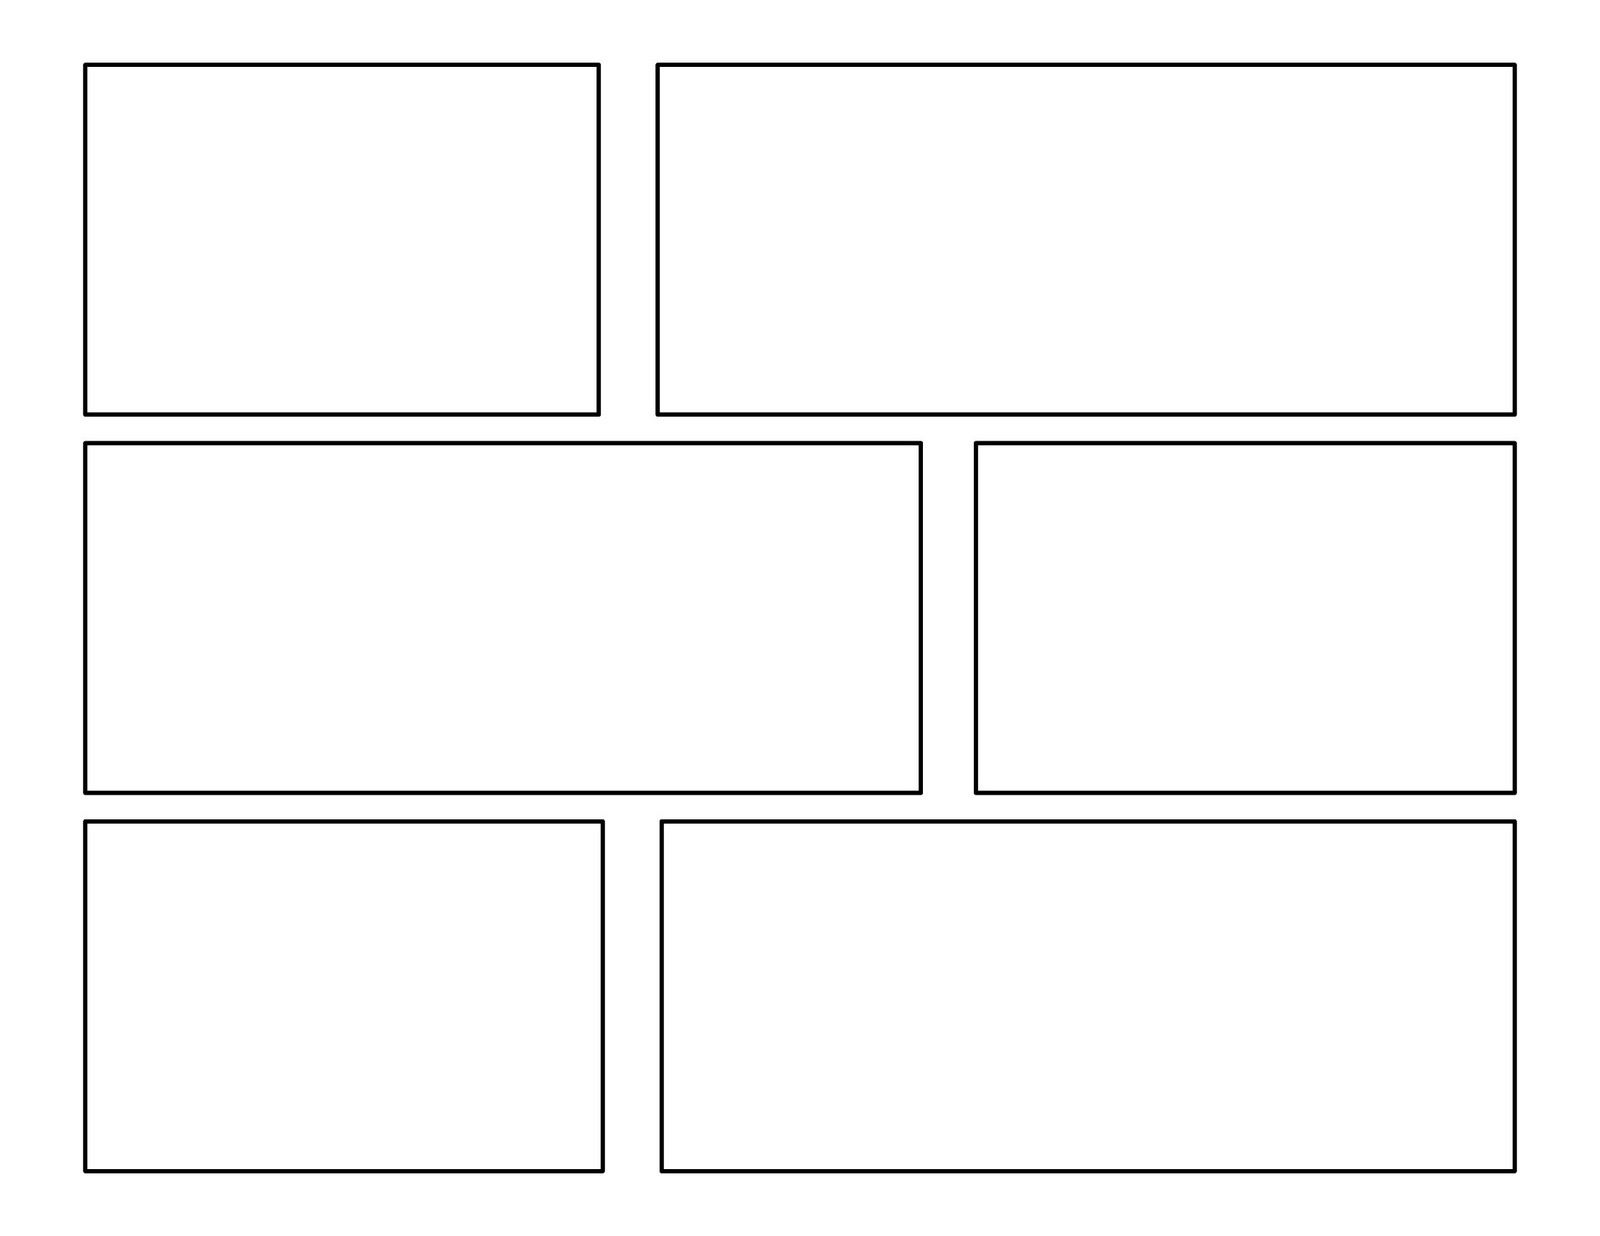 3rd Grade: First Batch Of Comic Templates Comic Panels - 1600x1236 ...